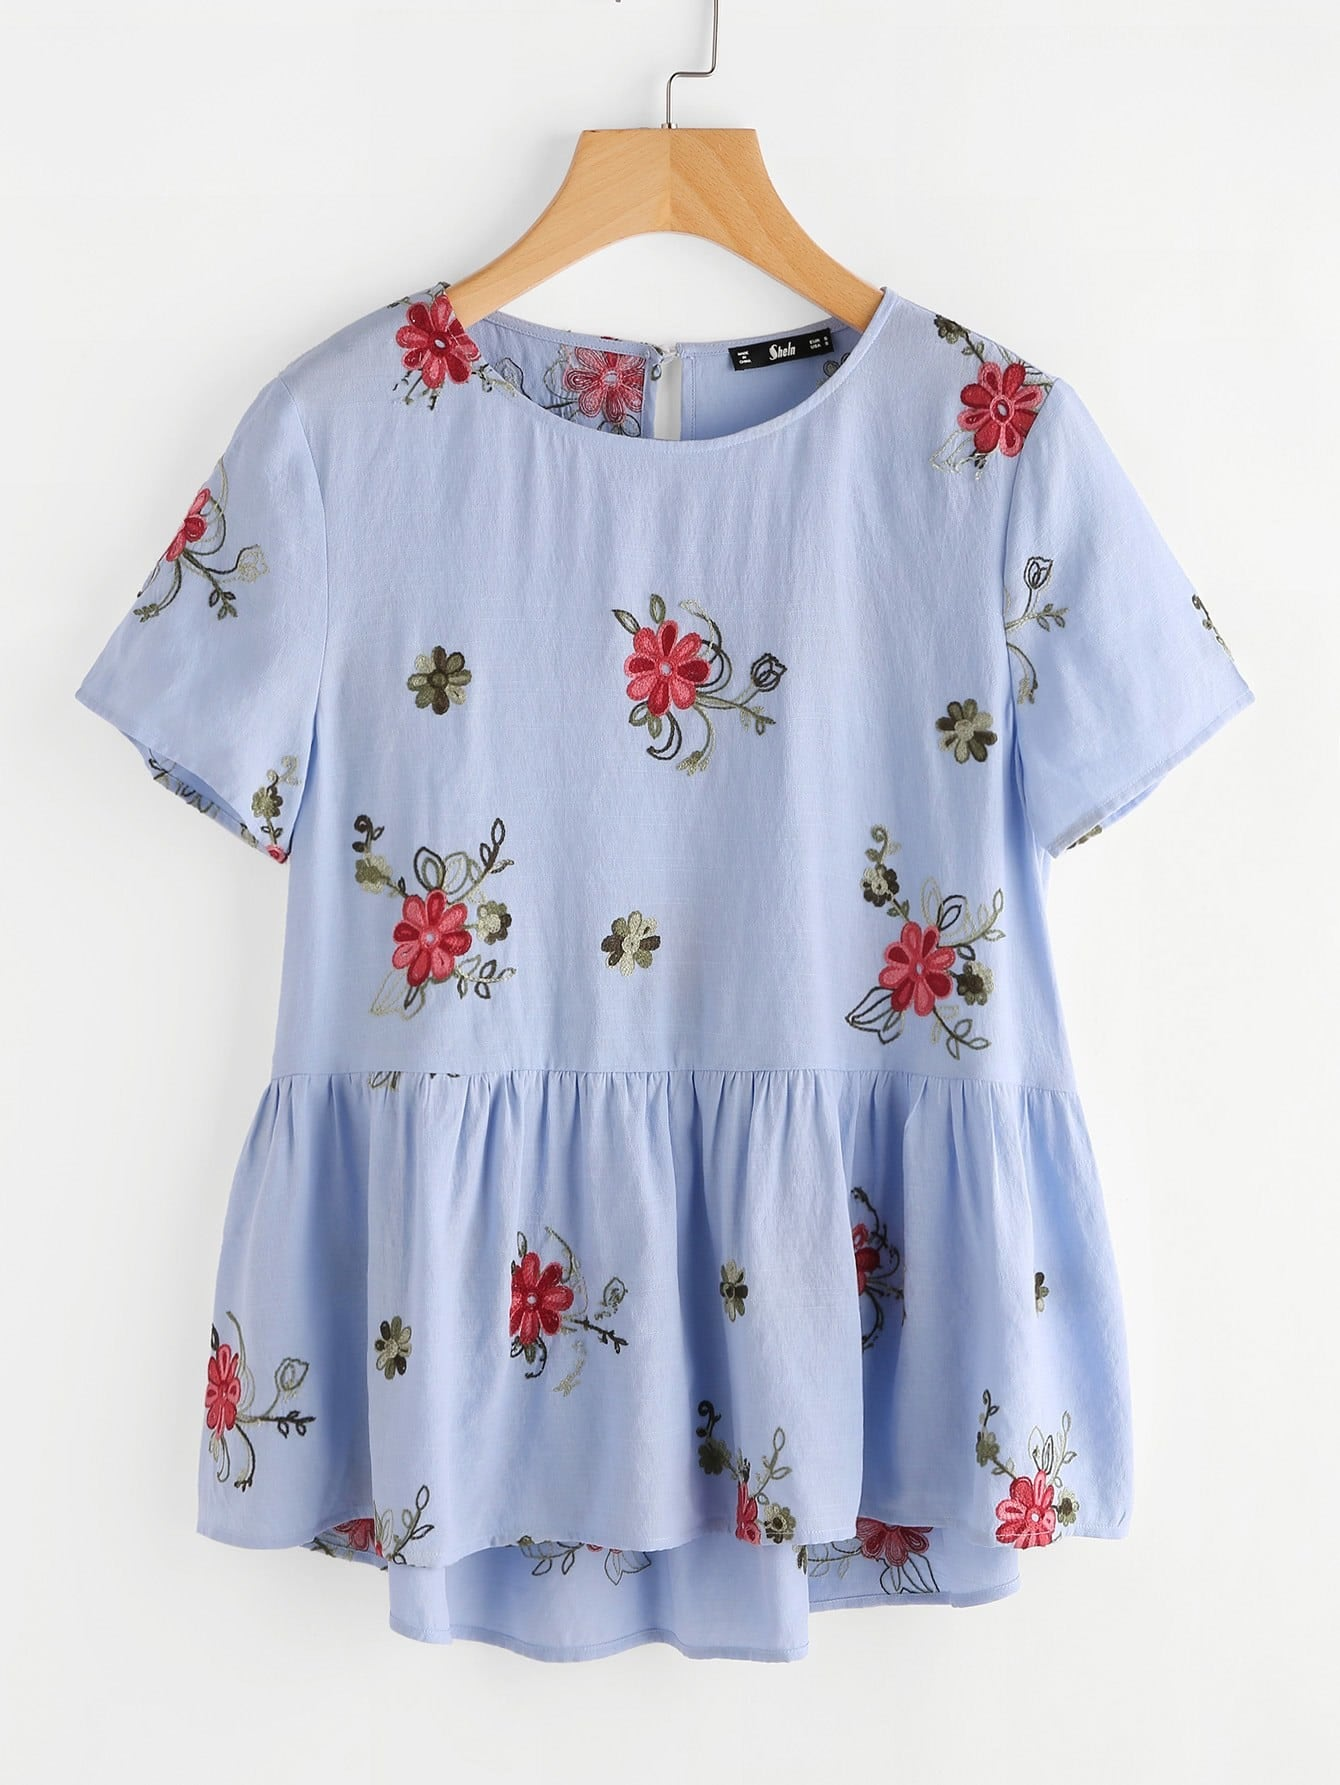 Flower Embroidered Keyhole Back Smock Top embroidered yoke buttoned keyhole frill sleeve smock top